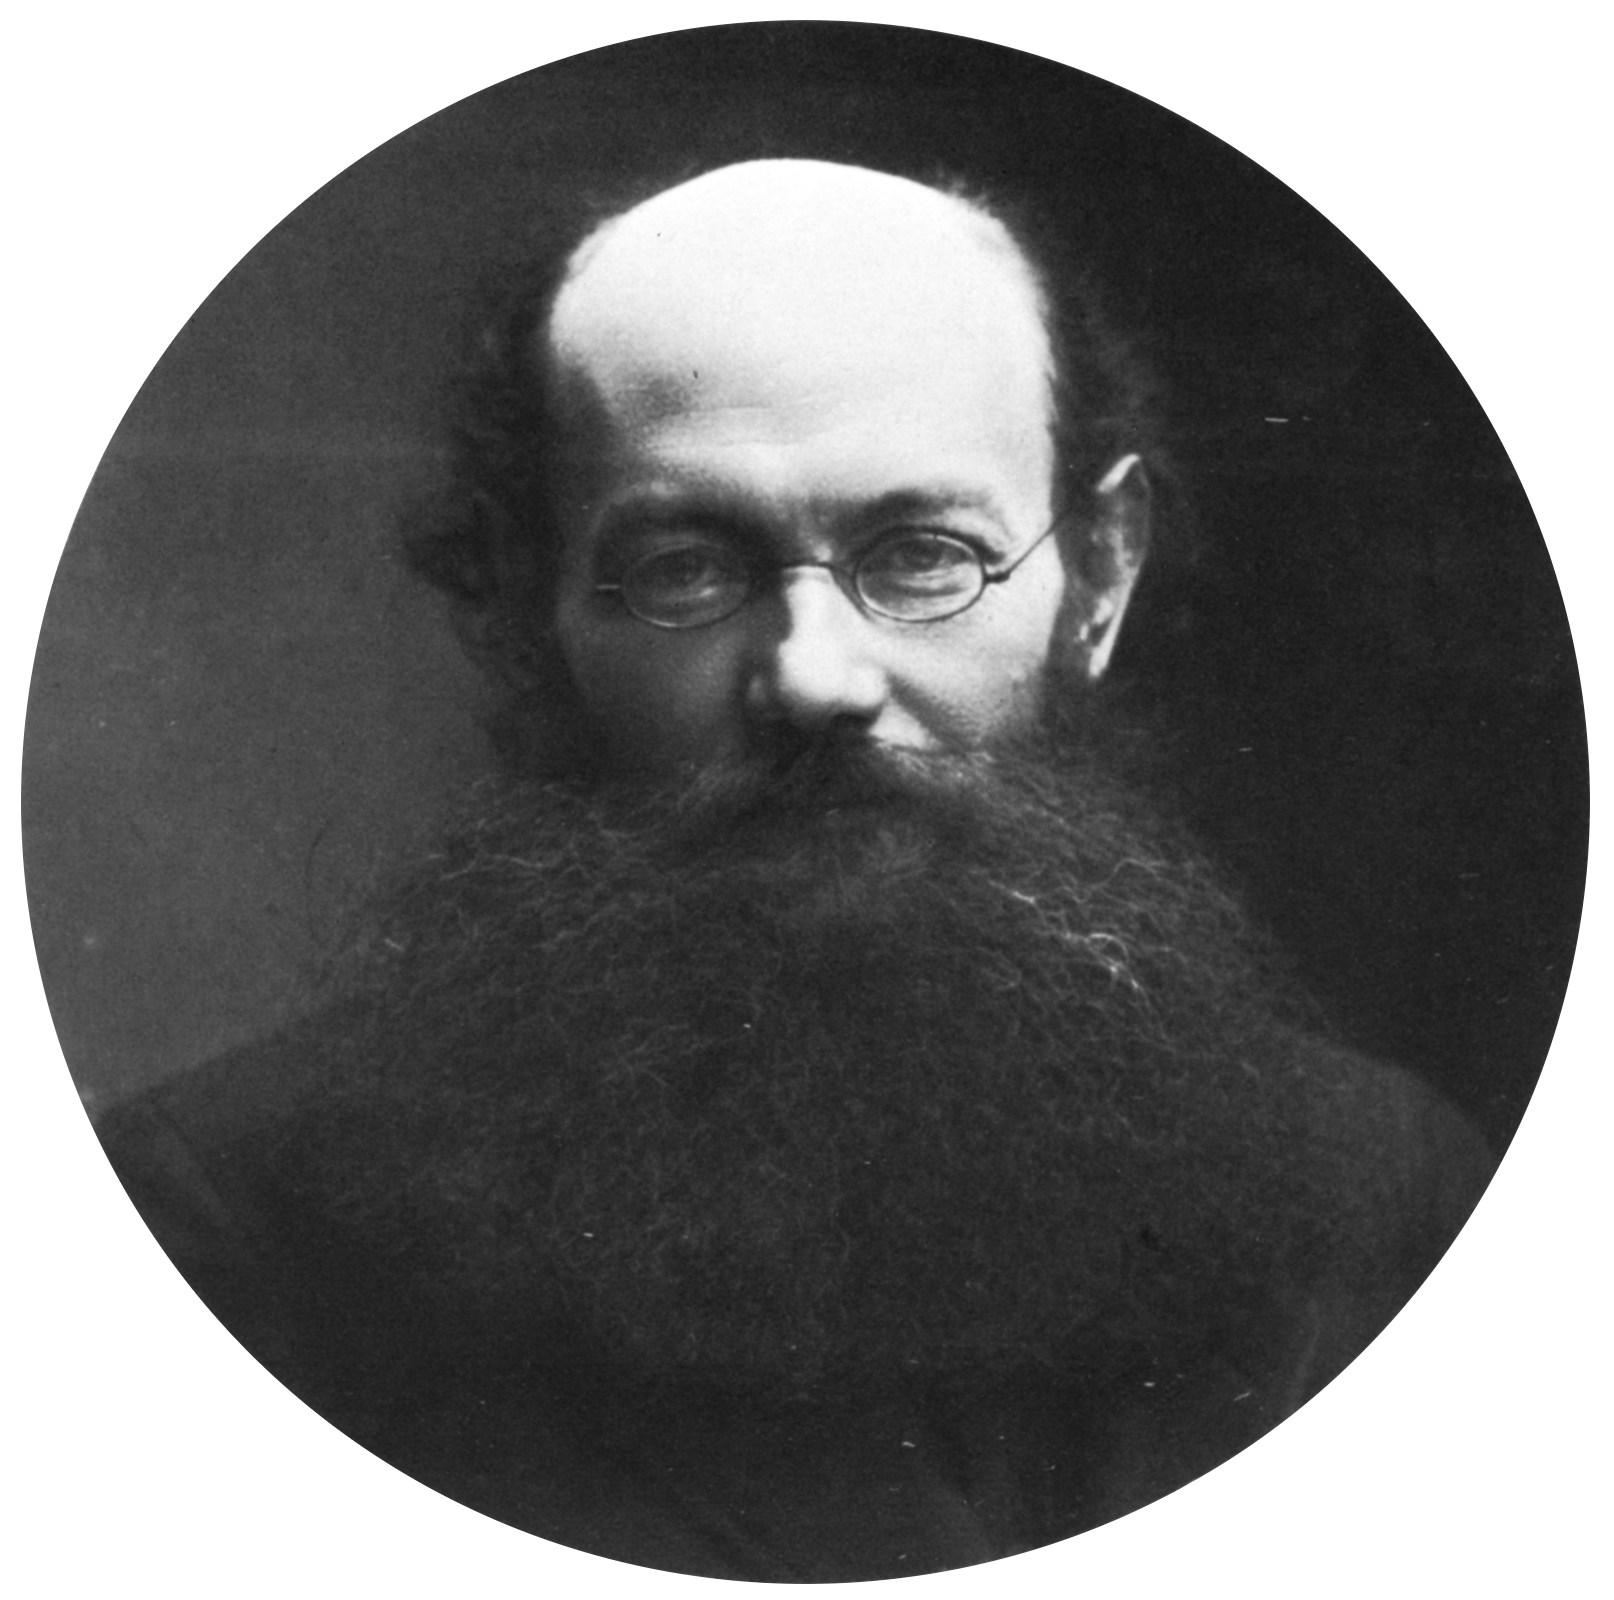 [December 9, 1842 – February 8, 1921) was a Russian geographer, economist, activist, philologist, zoologist, evolutionary theorist, philosopher, writer and prominent anarchist.